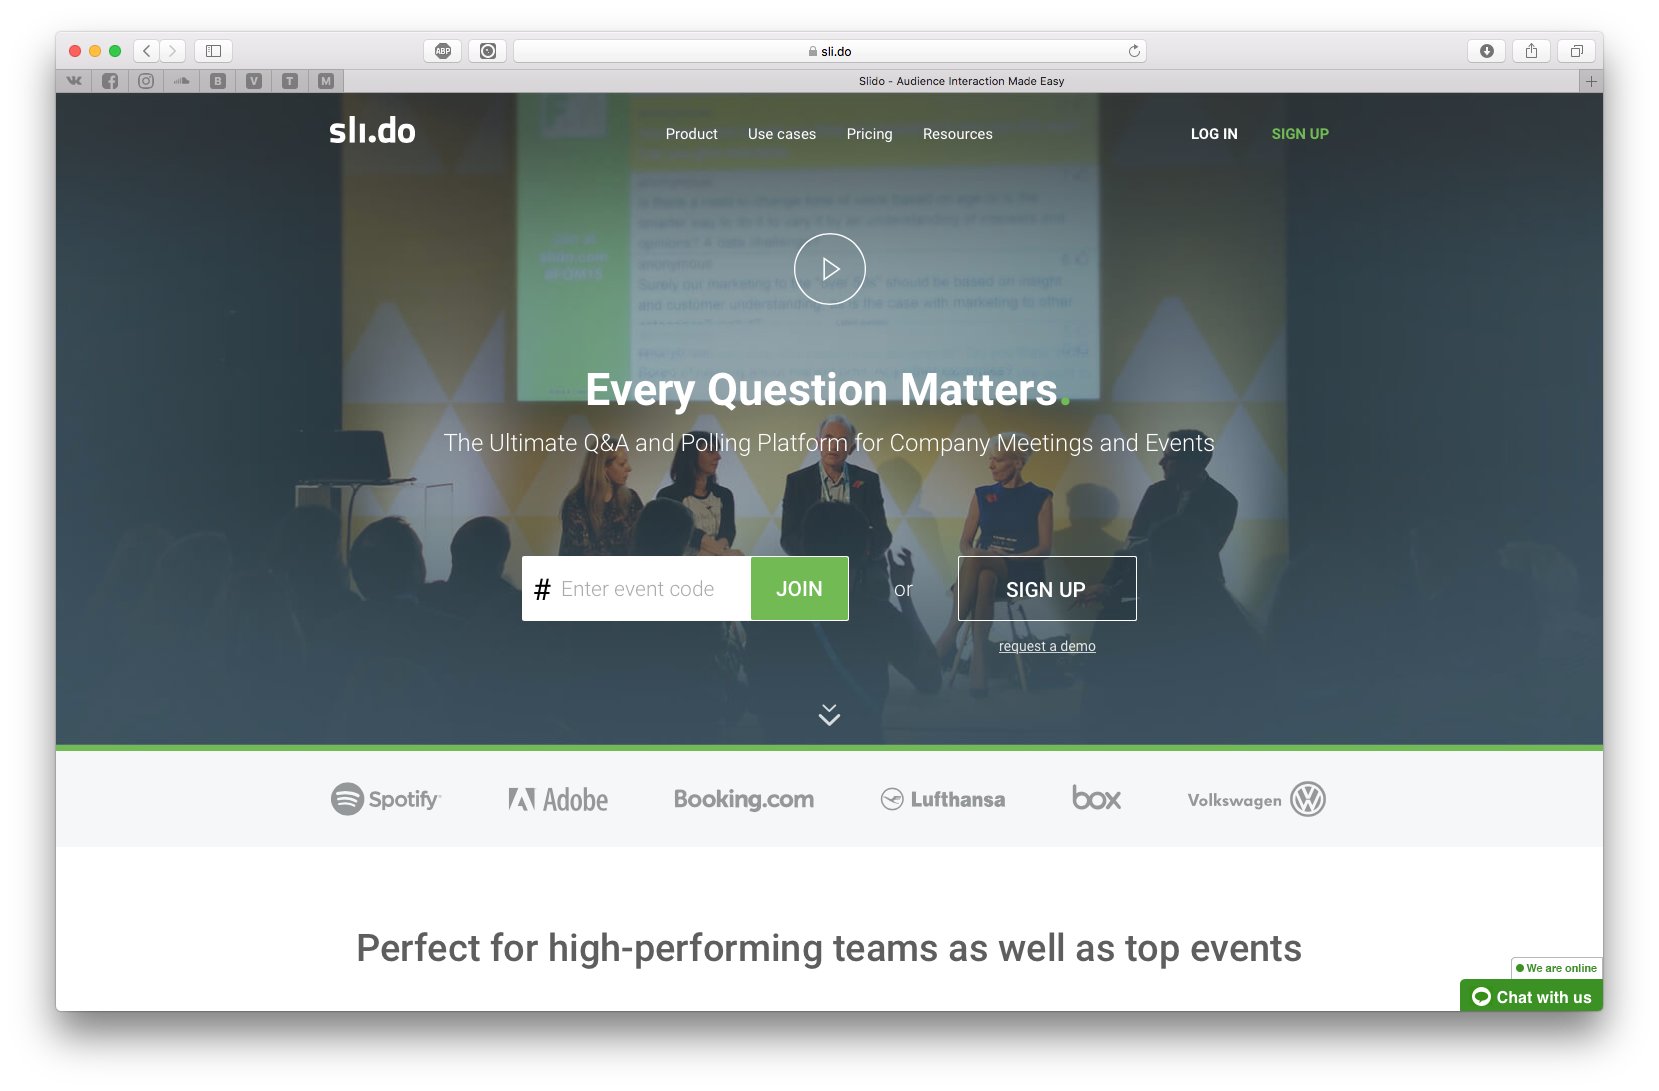 Sli.do provides incredible (almost overwhelming) Q&A and polling tools for company meetings and events